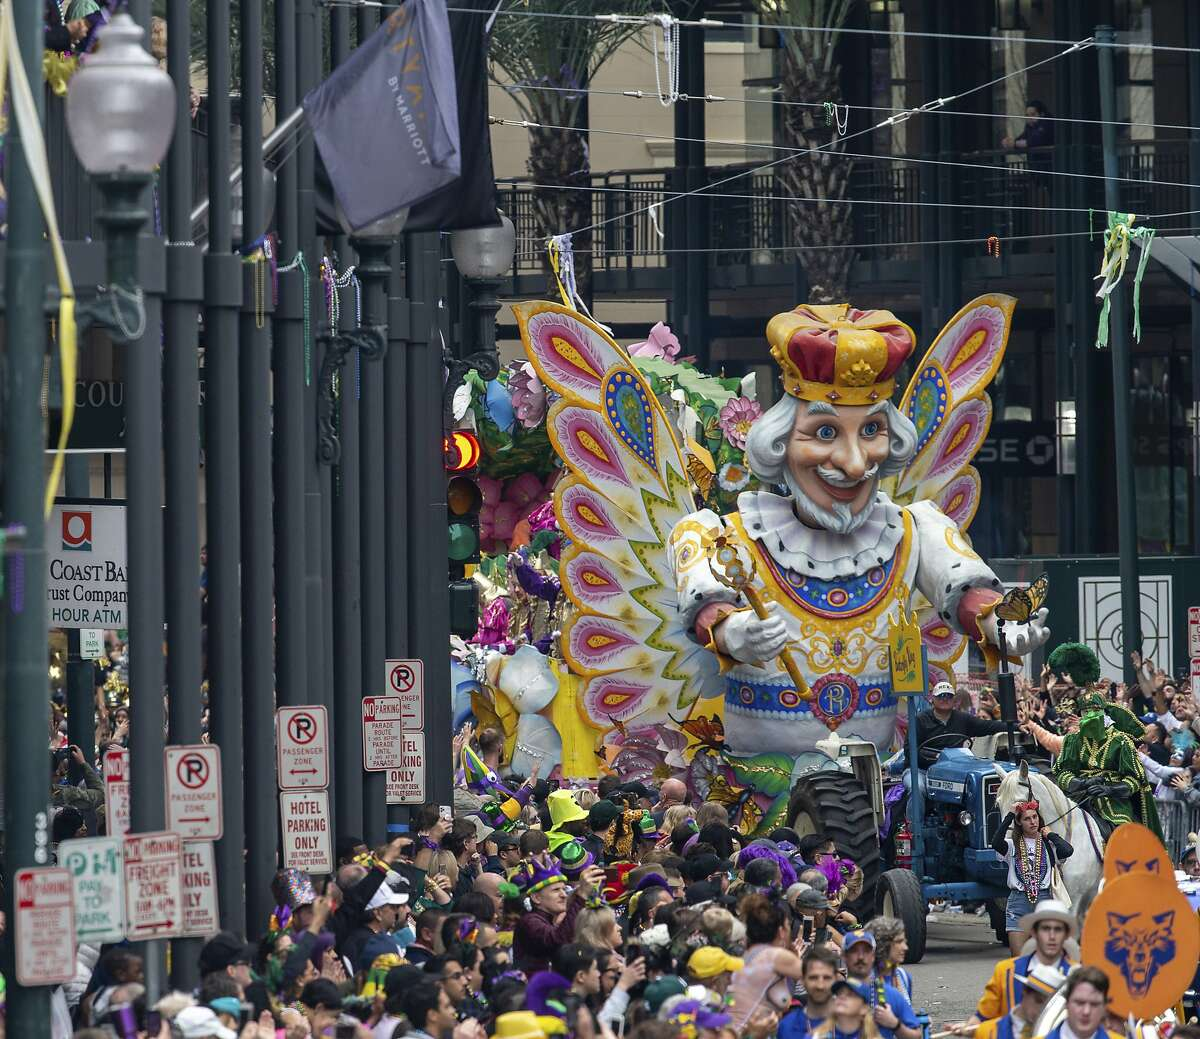 FILE - In this Feb. 25, 2020, file photo, the Butterfly King float makes it way down St. Charles Ave. near Canal Street as Rex rolls on Mardi Gras Day in New Orleans. There won't be any parades on Mardi Gras or during the weeks leading up to it because they just can't fit within restrictions to slow the spread of the coronavirus pandemic, a city spokesman said Tuesday, Nov. 17, 2020, The 250-person cap on outdoor crowds is